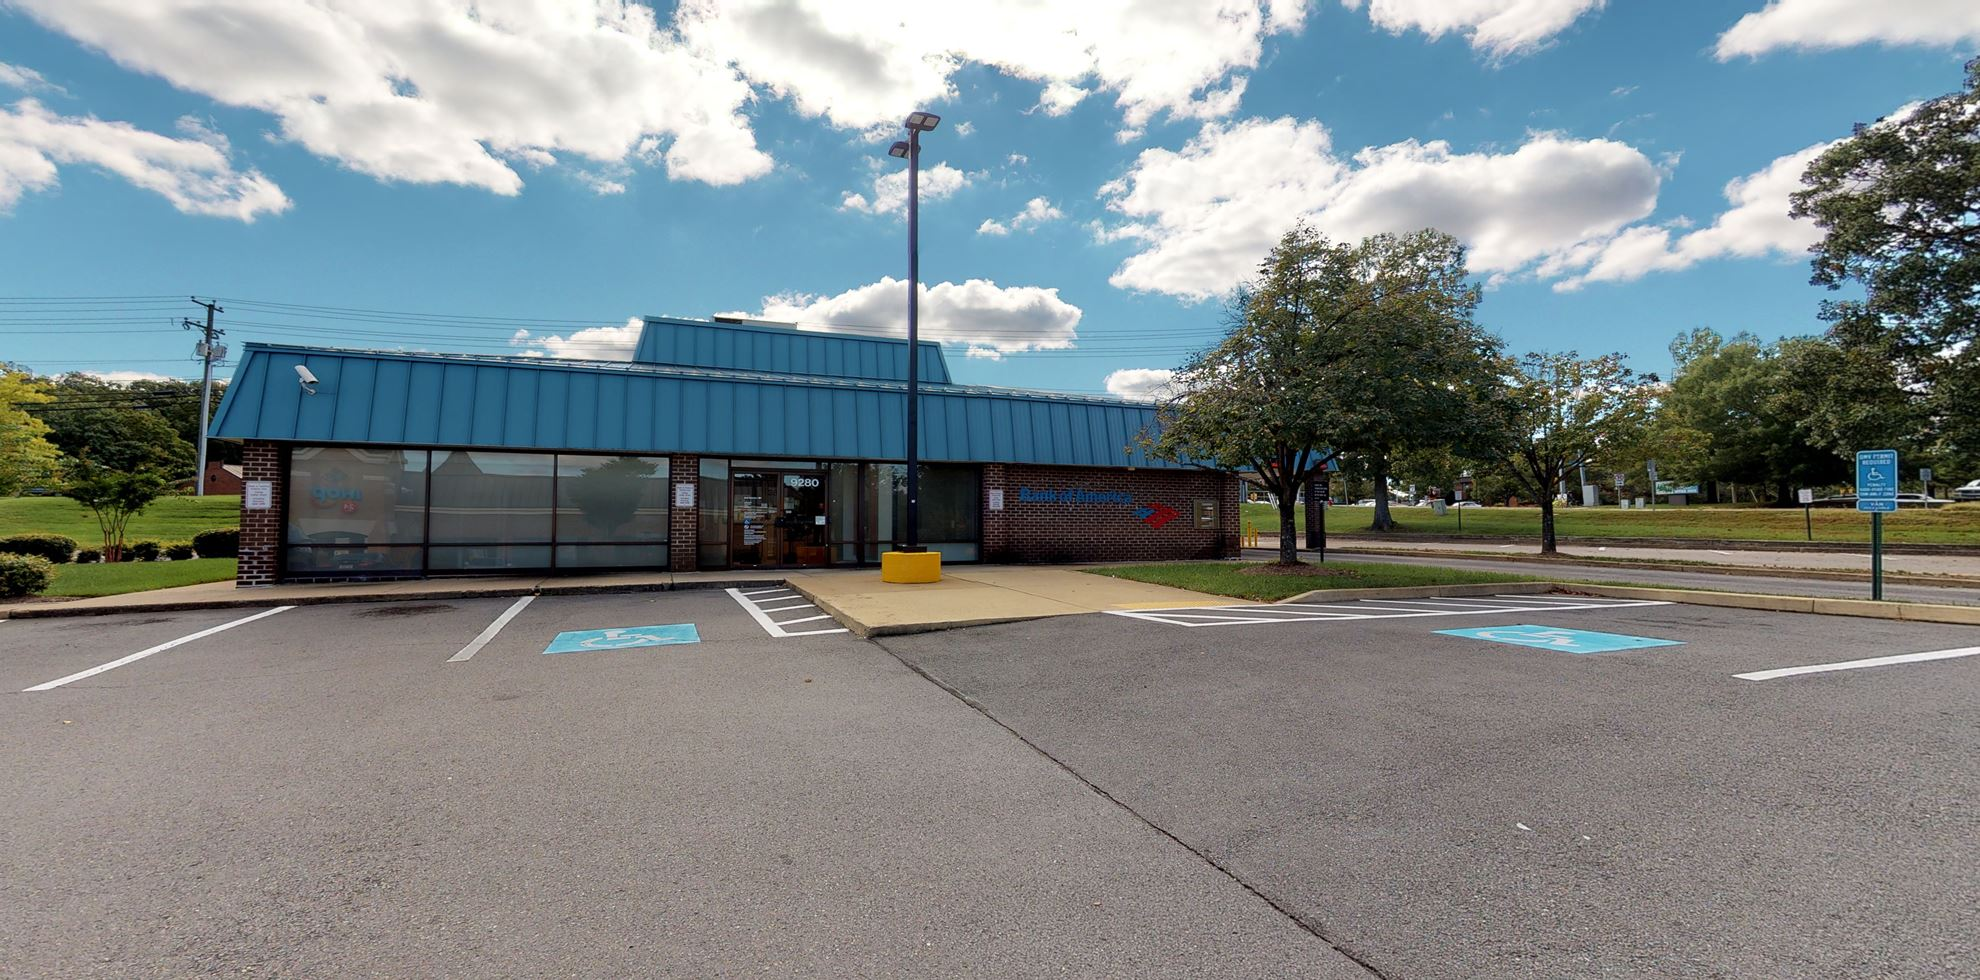 Bank of America financial center with drive-thru ATM   9280 Old Keene Mill Rd, Burke, VA 22015